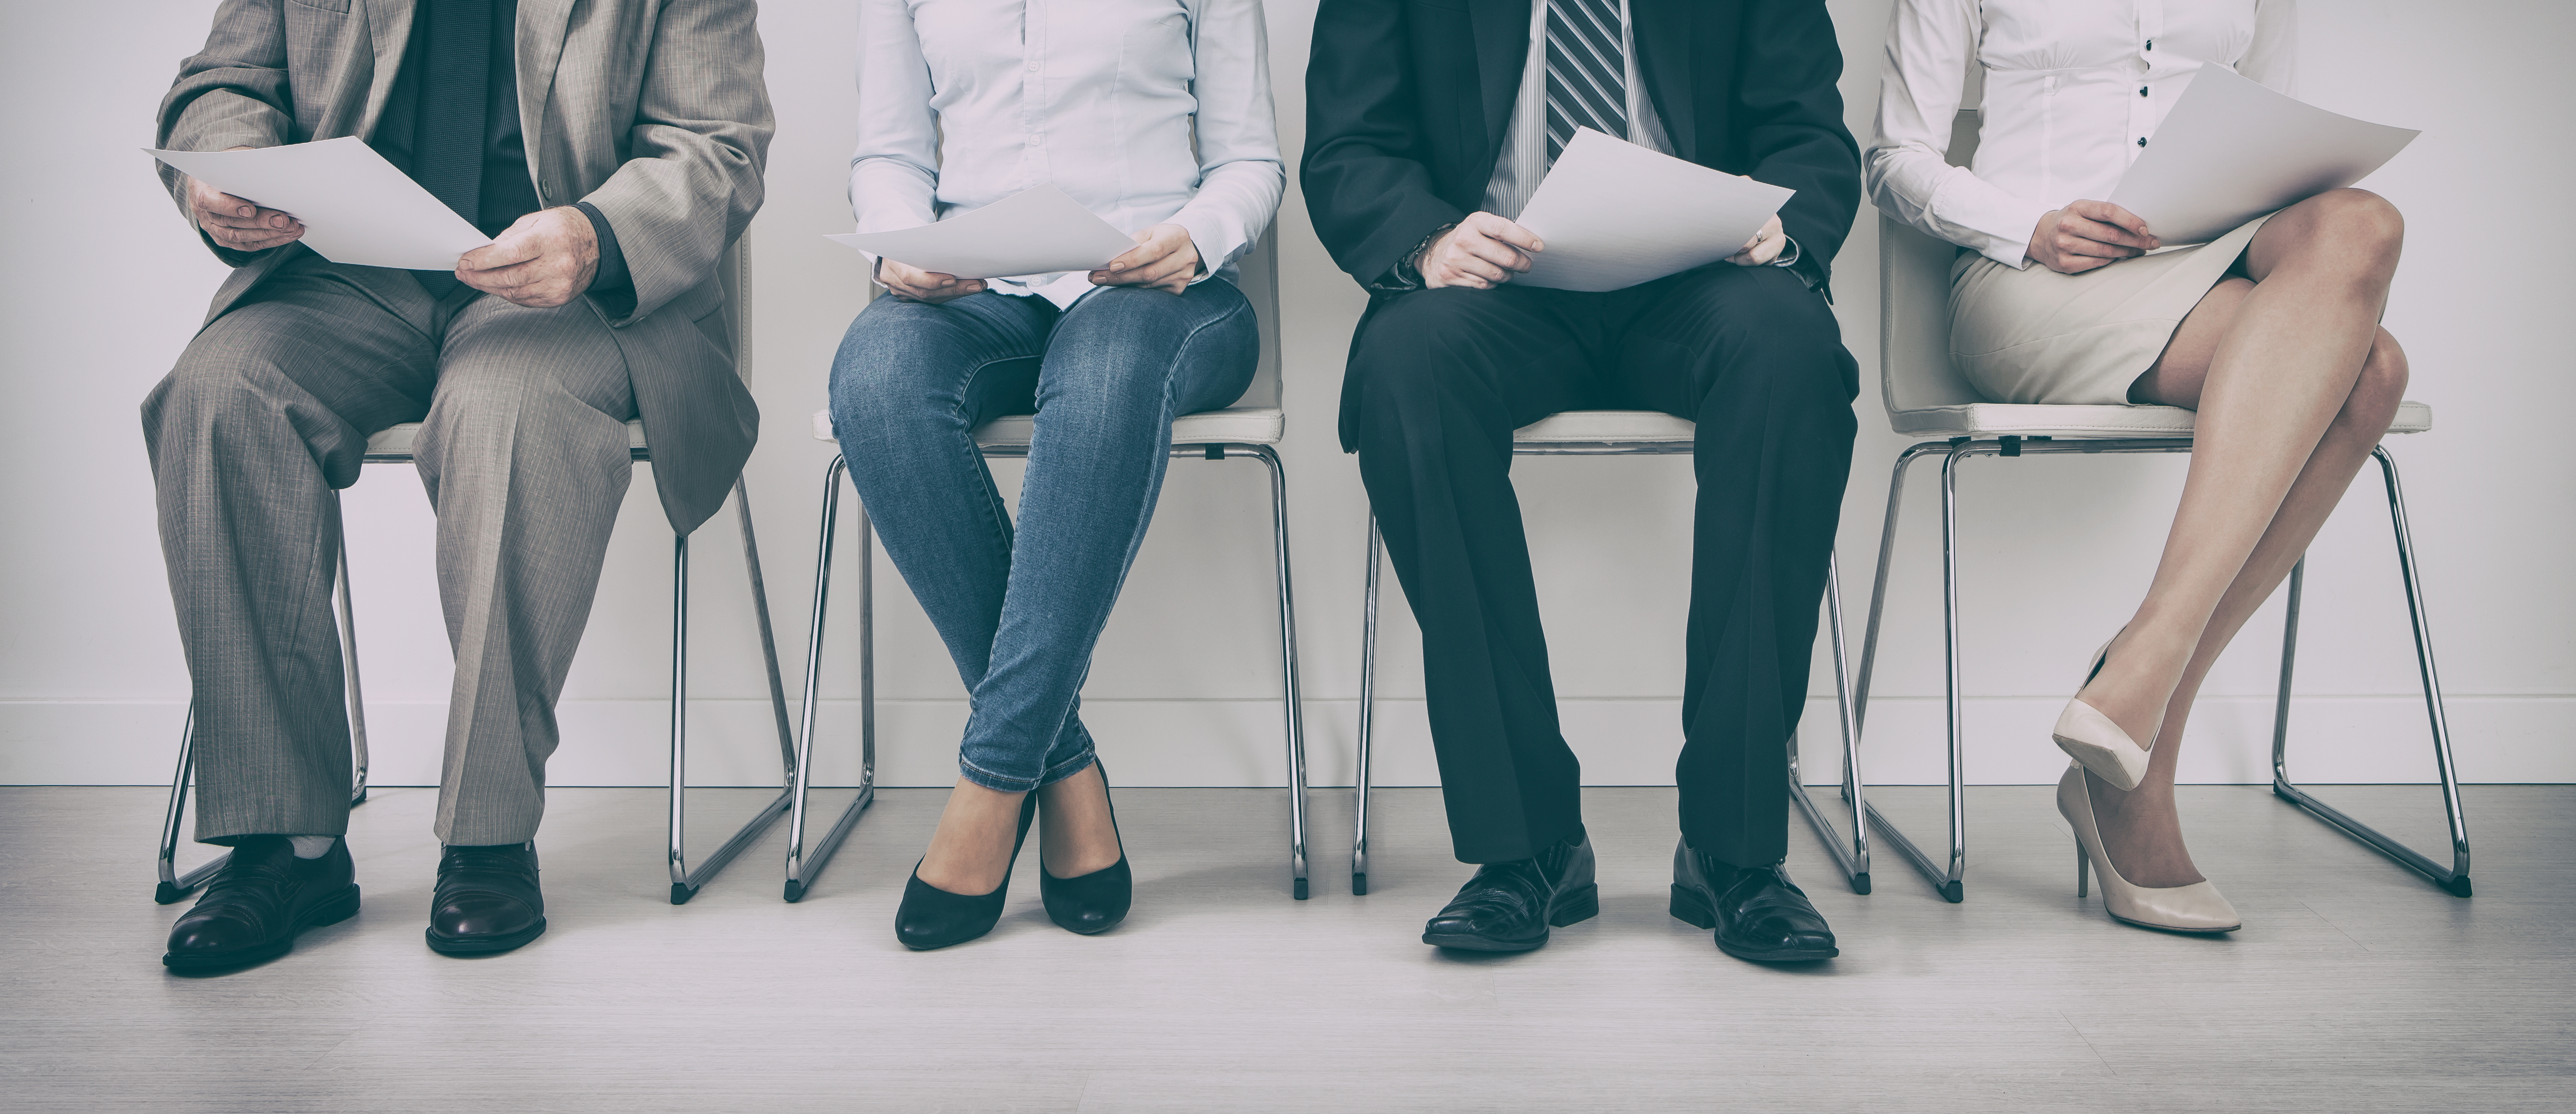 10 Questions to Ask the Interviewer